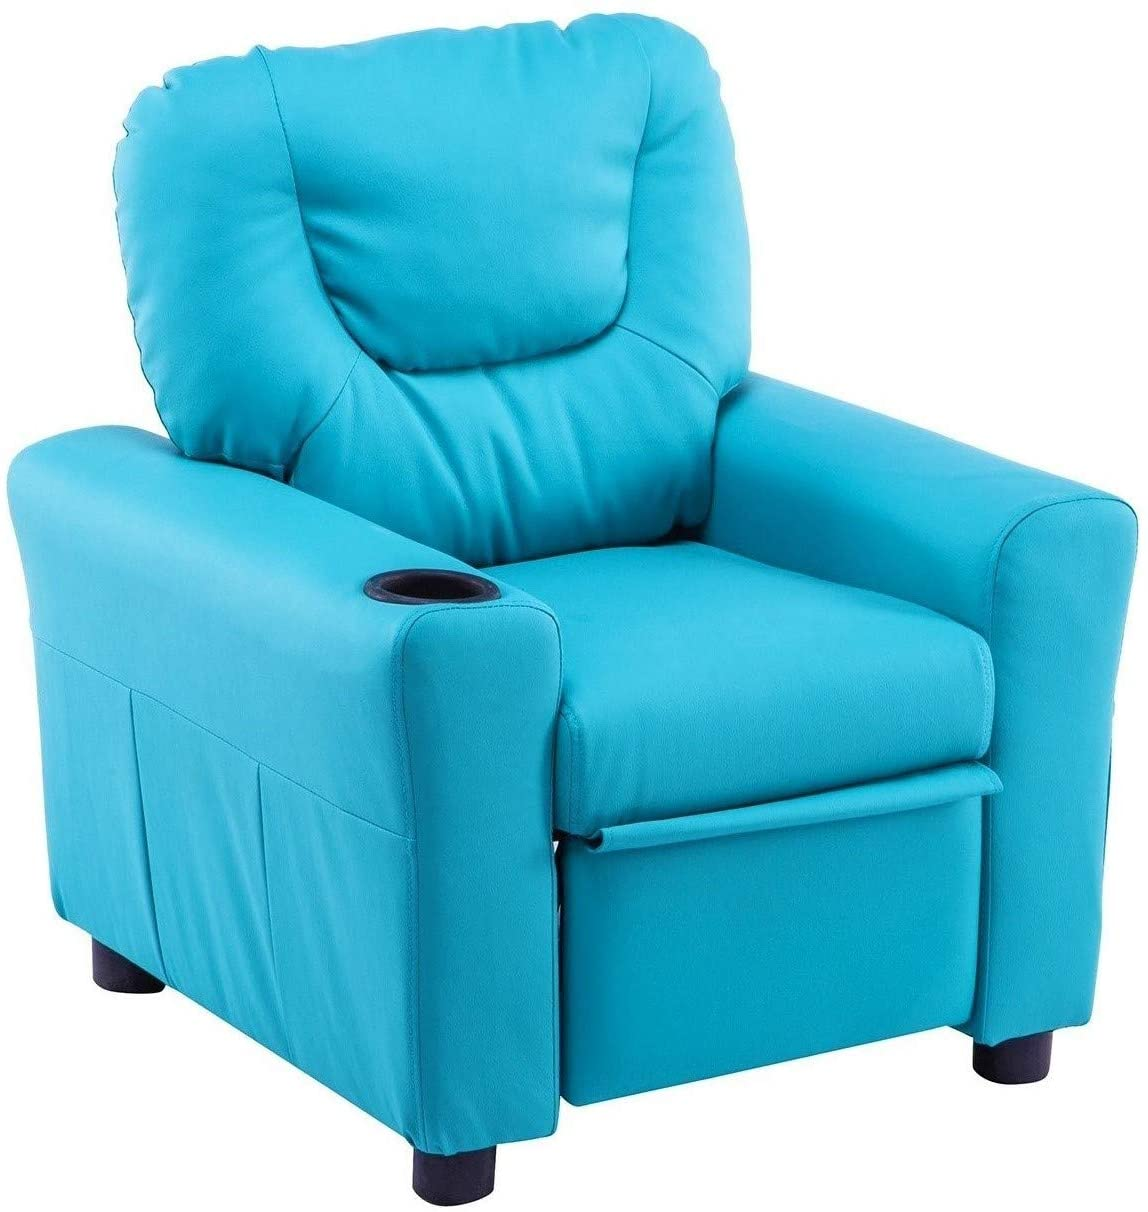 Mcombo Kids Recliner Chair Armrest Sofa Couch with Cup Holder for Toddlers Boys Girls Faux Leather 7240 Blue